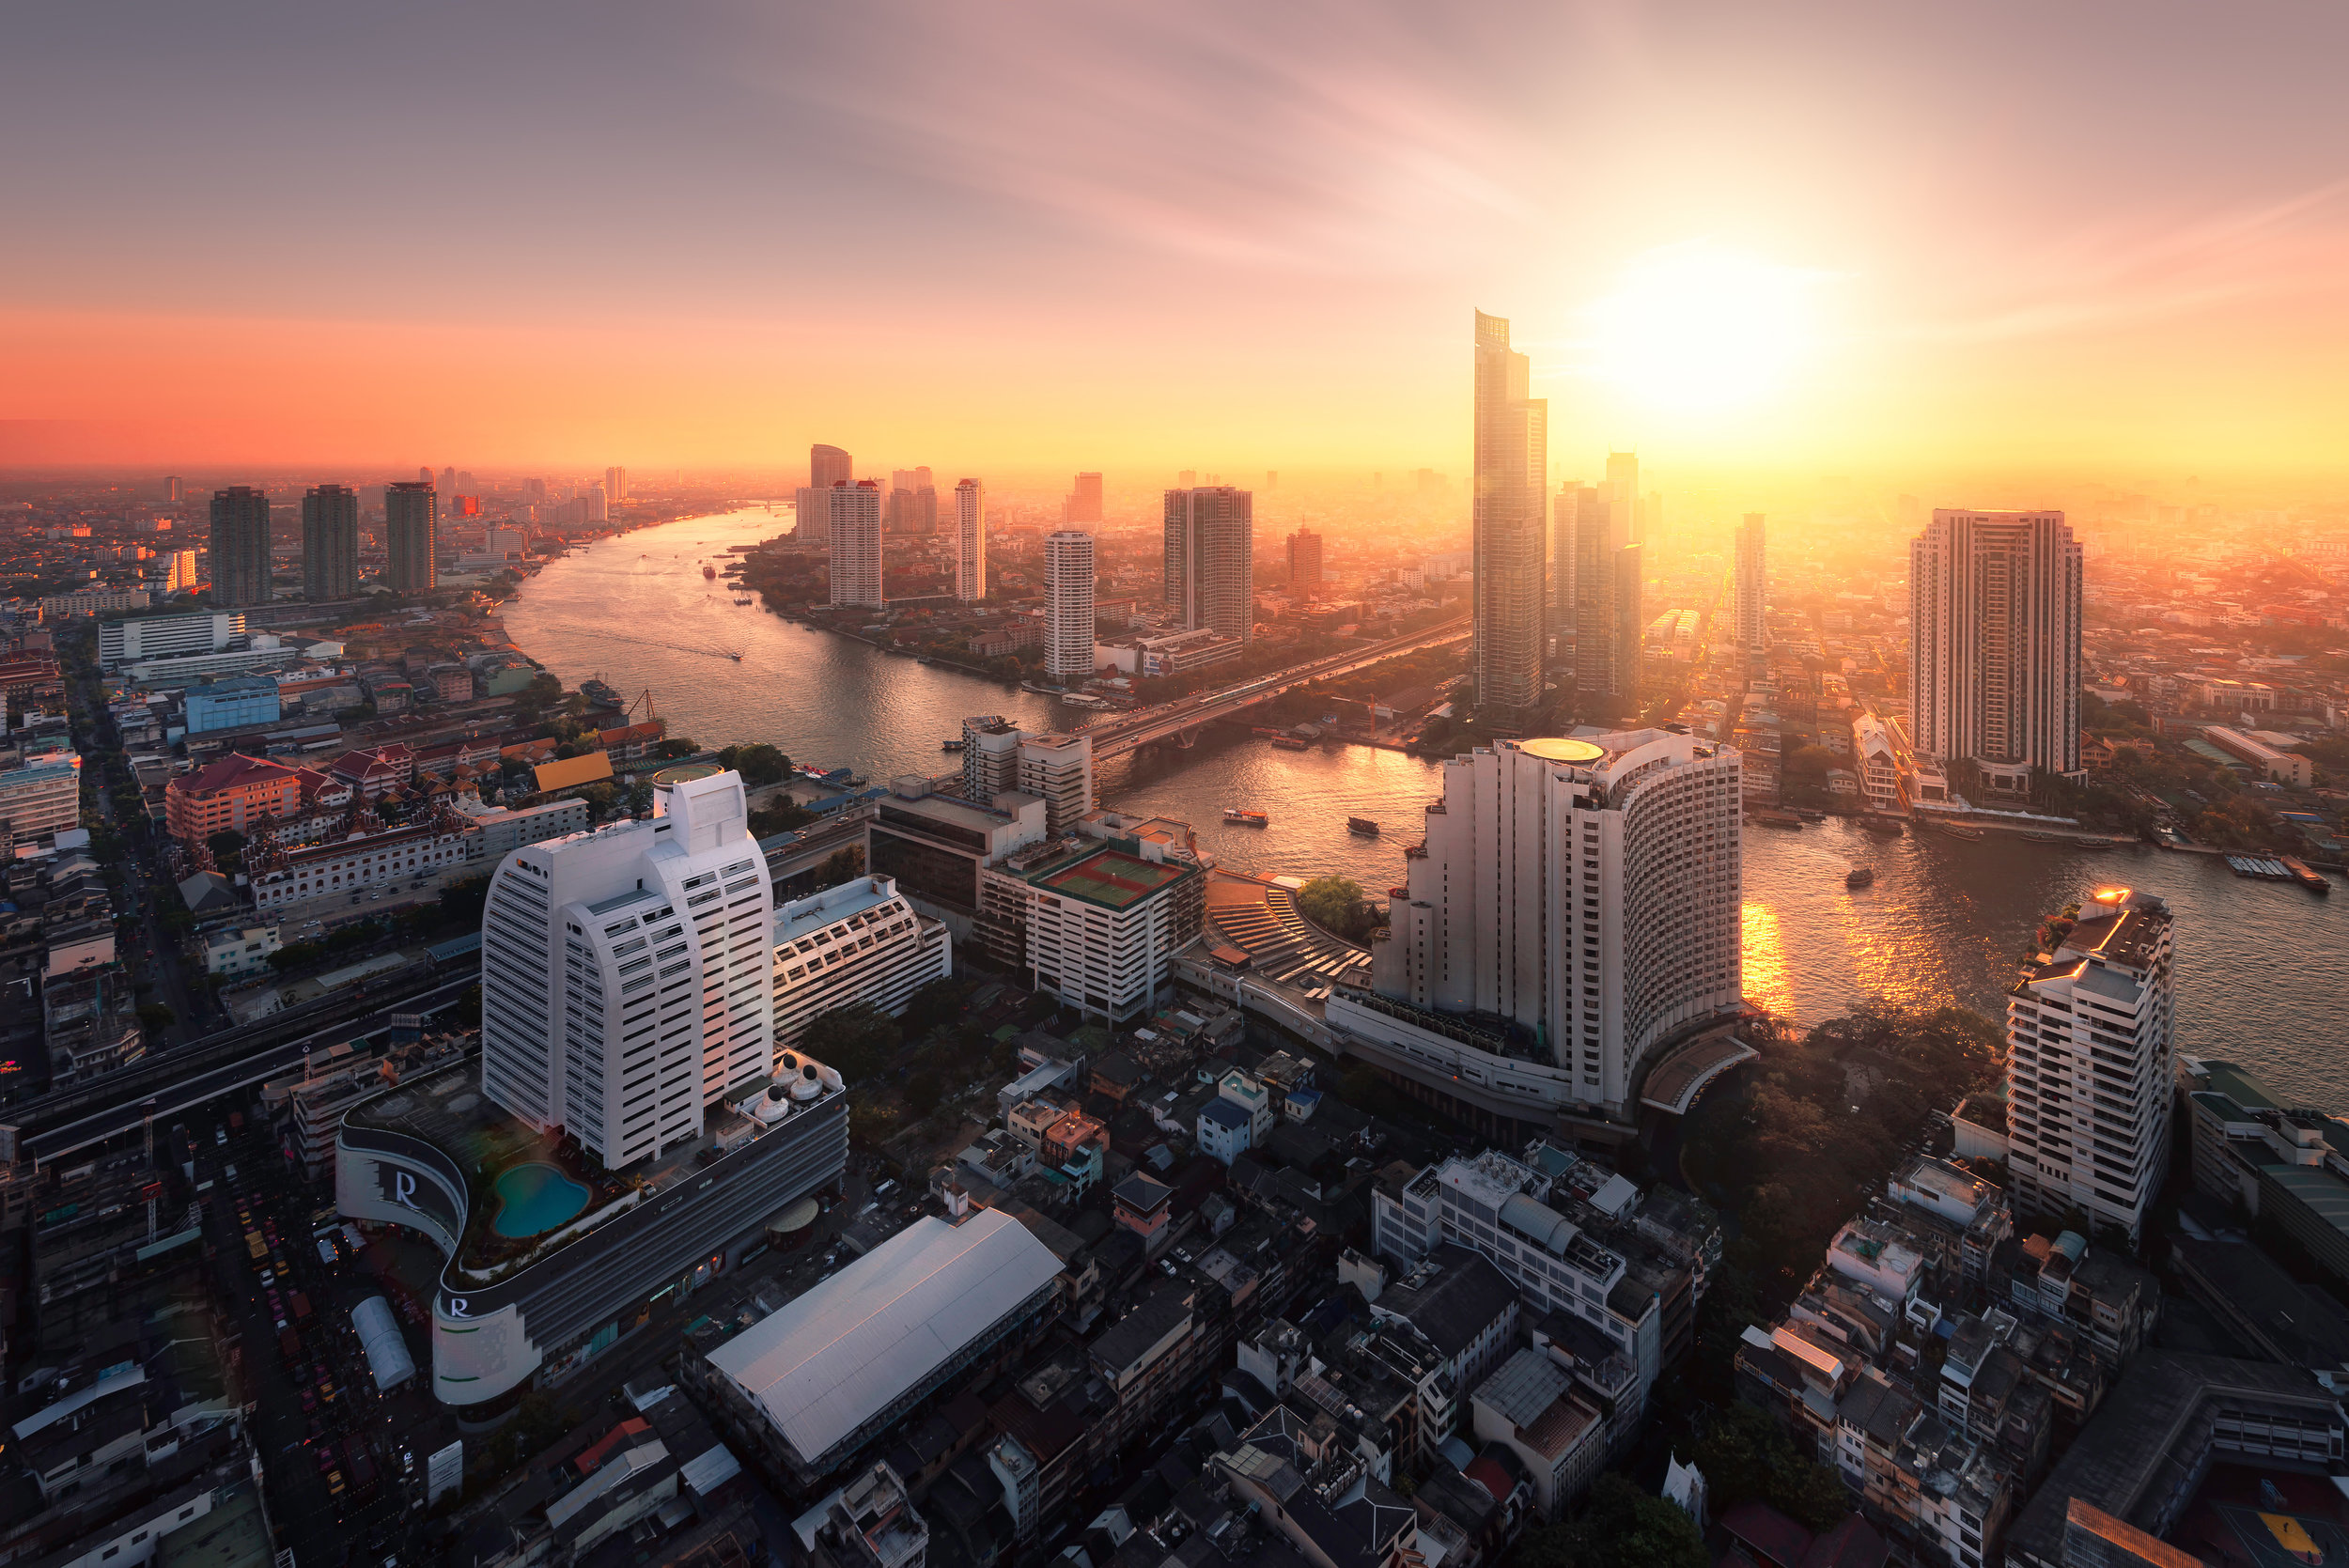 Chao Phraya River sunlight bangkok city